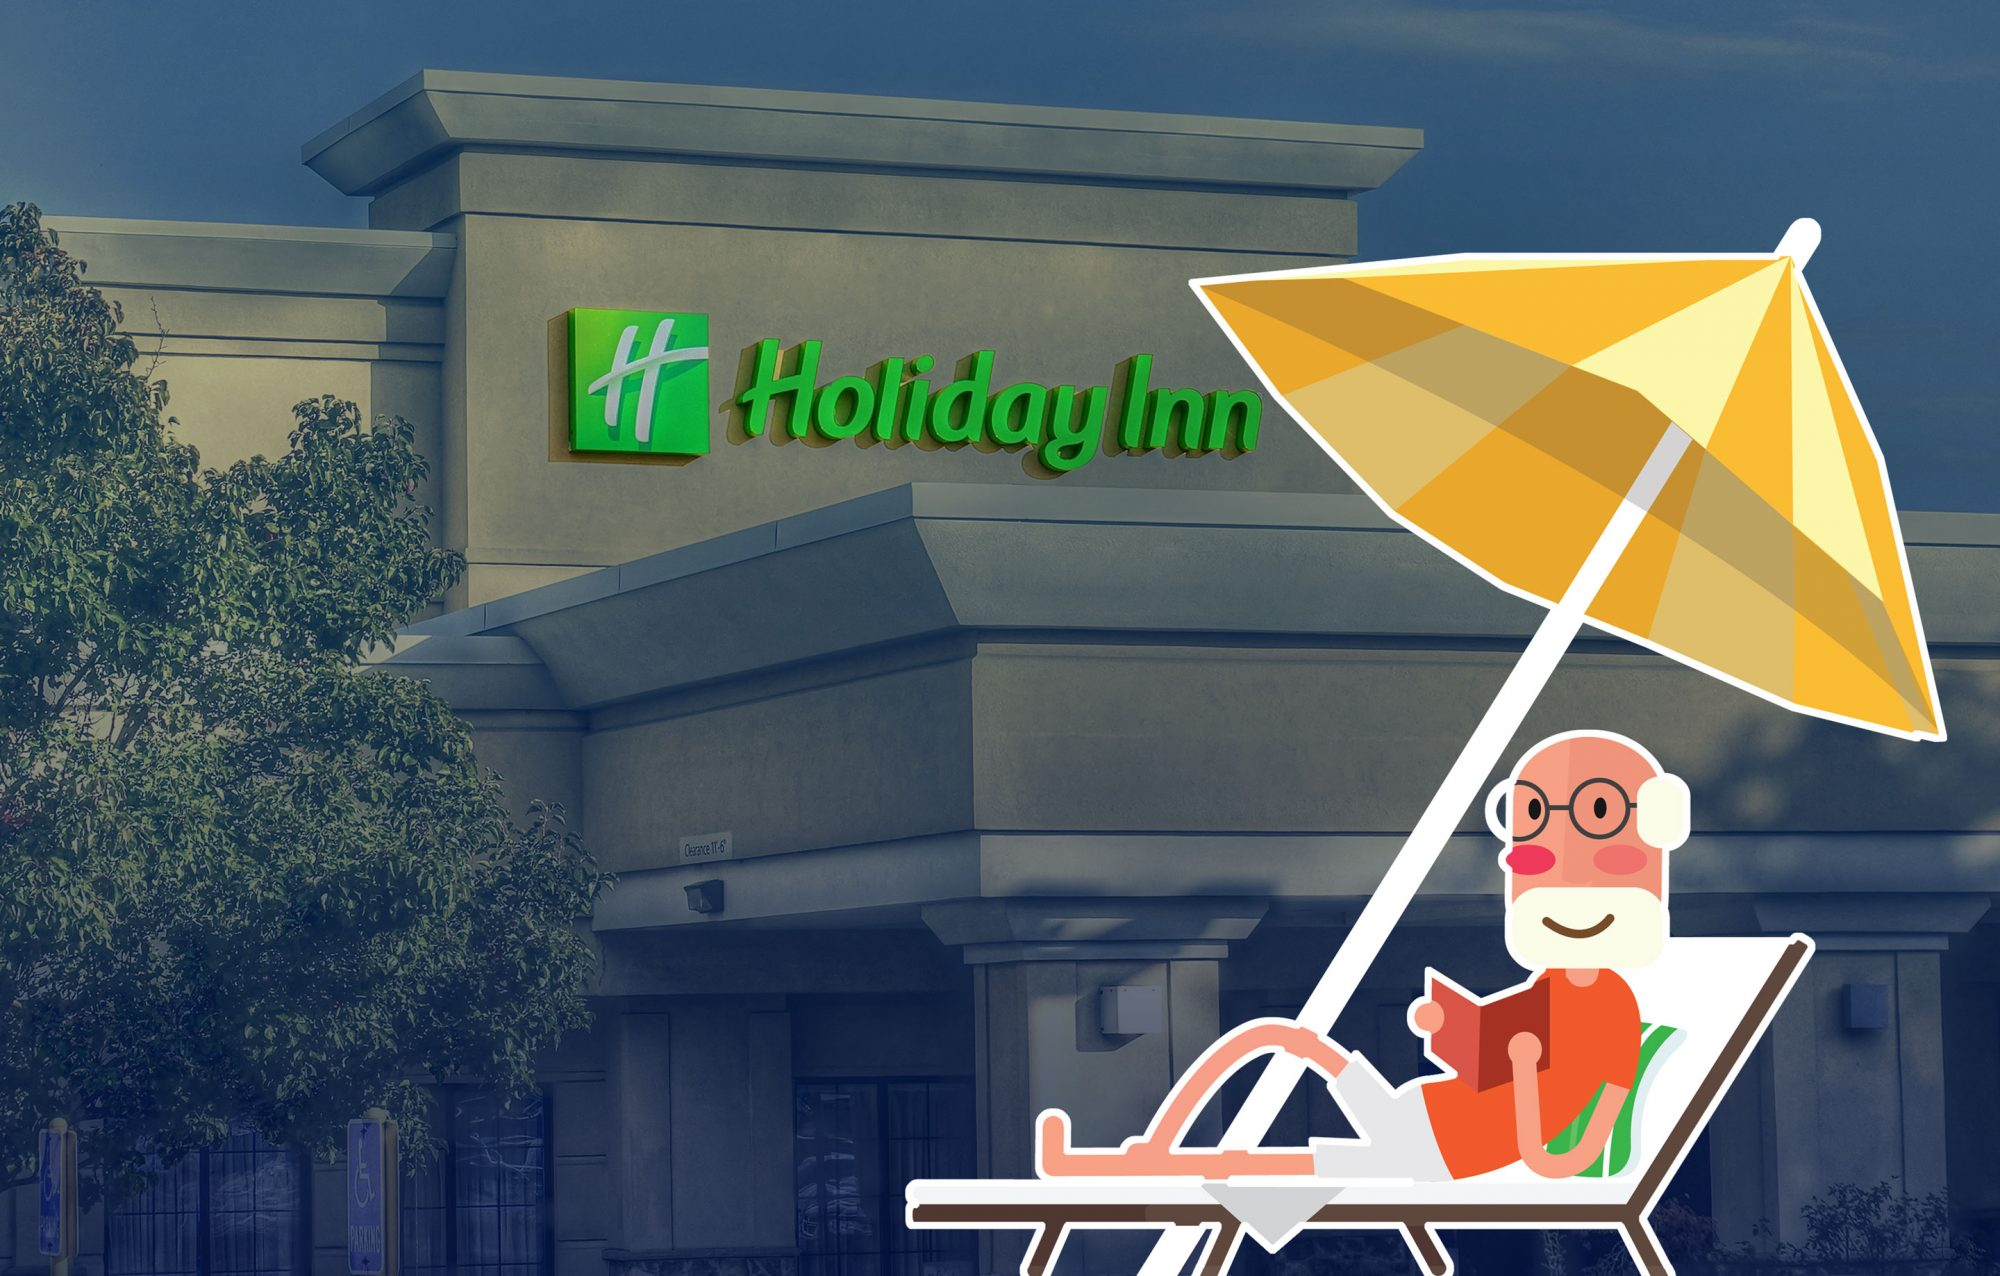 This Man Wants to Retire in a Holiday Inn. Here's Why That's a Terrible Idea